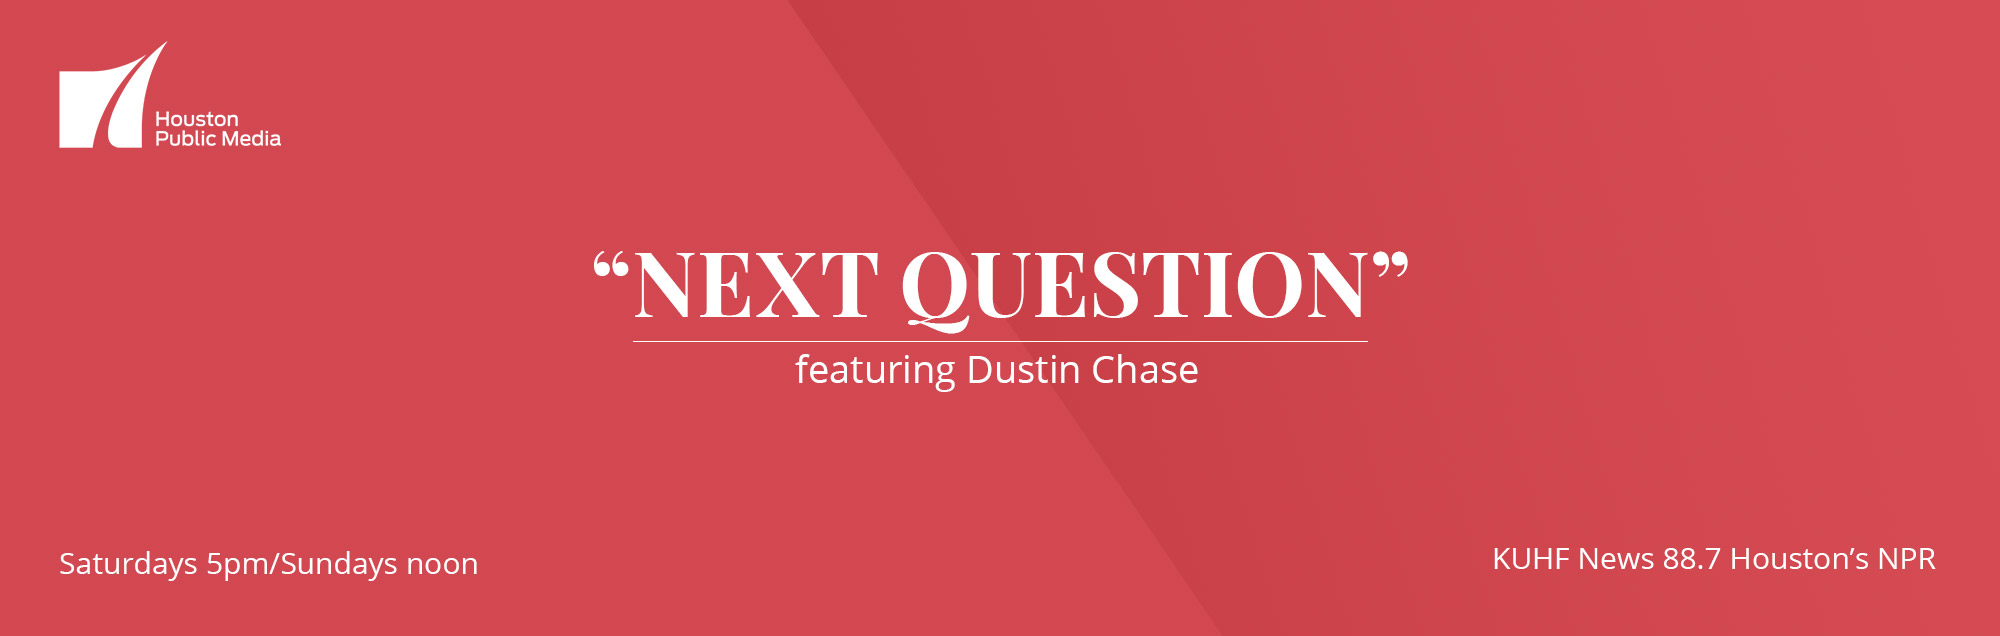 Next Question featuring Dustin Chase